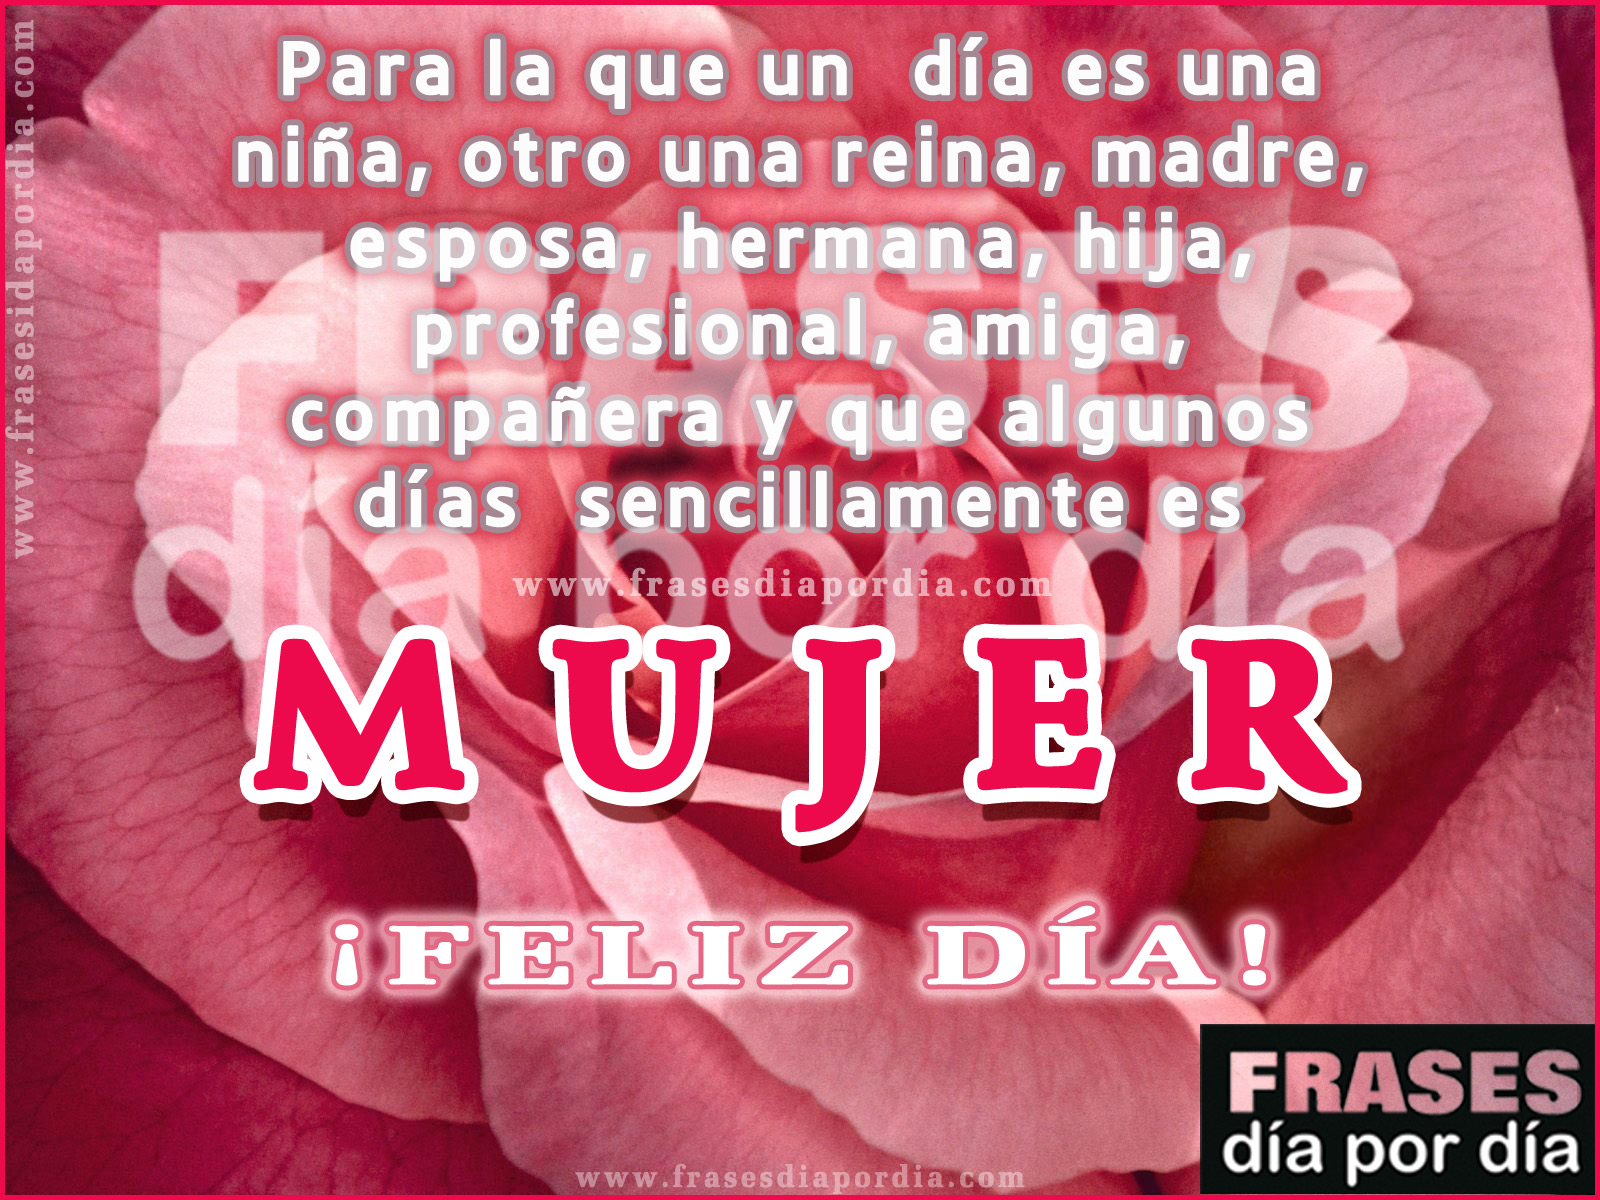 Feliz Dia Mujer 0 ratings0% found this document useful (0 votes). feliz dia mujer